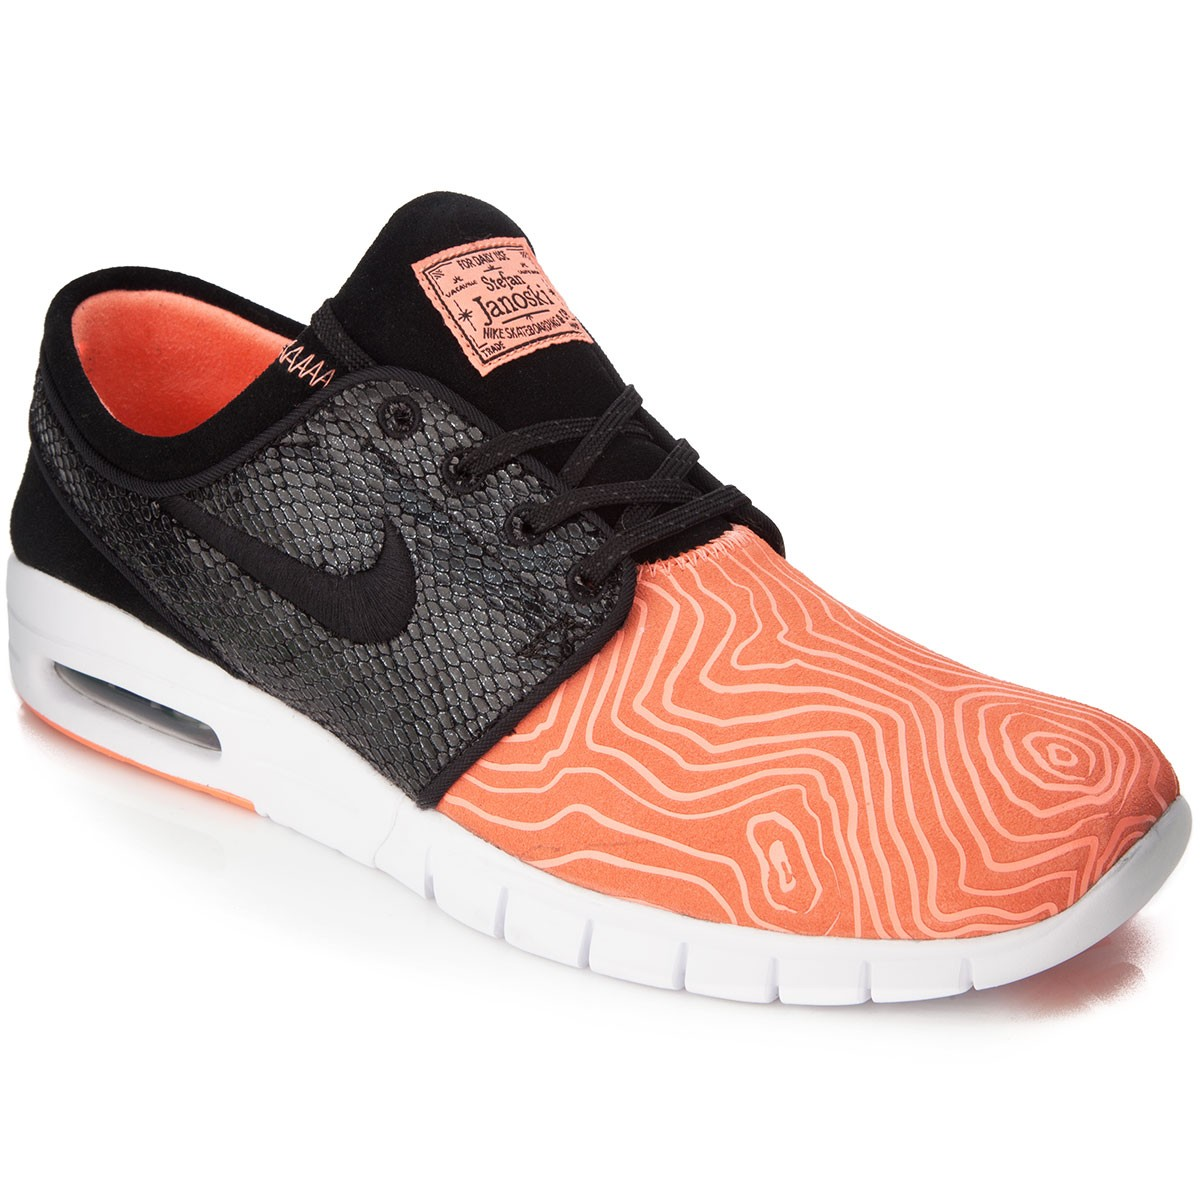 Nike sb stefan janoski max suede fish ladder shoes for Fish shoes nike